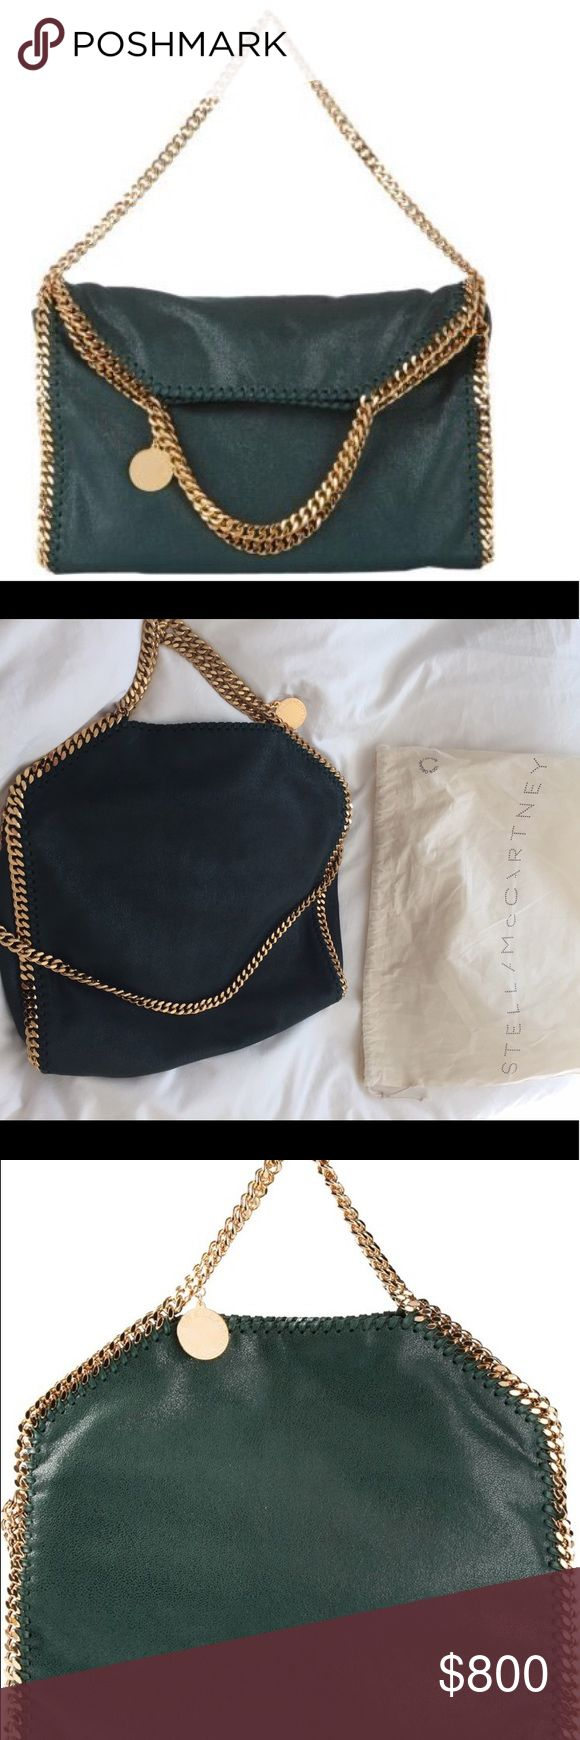 """Stella MacCartney Falabella bag Looks brand new. Foldover dark green tote with beautiful gold chains. Comes in original dust bag as pictured. This is classic bag and limited color with gold chain. Worn few times. No trade in. 4"""" strap drop; 11"""" shoulder strap drop. Stella McCartney Bags Totes"""